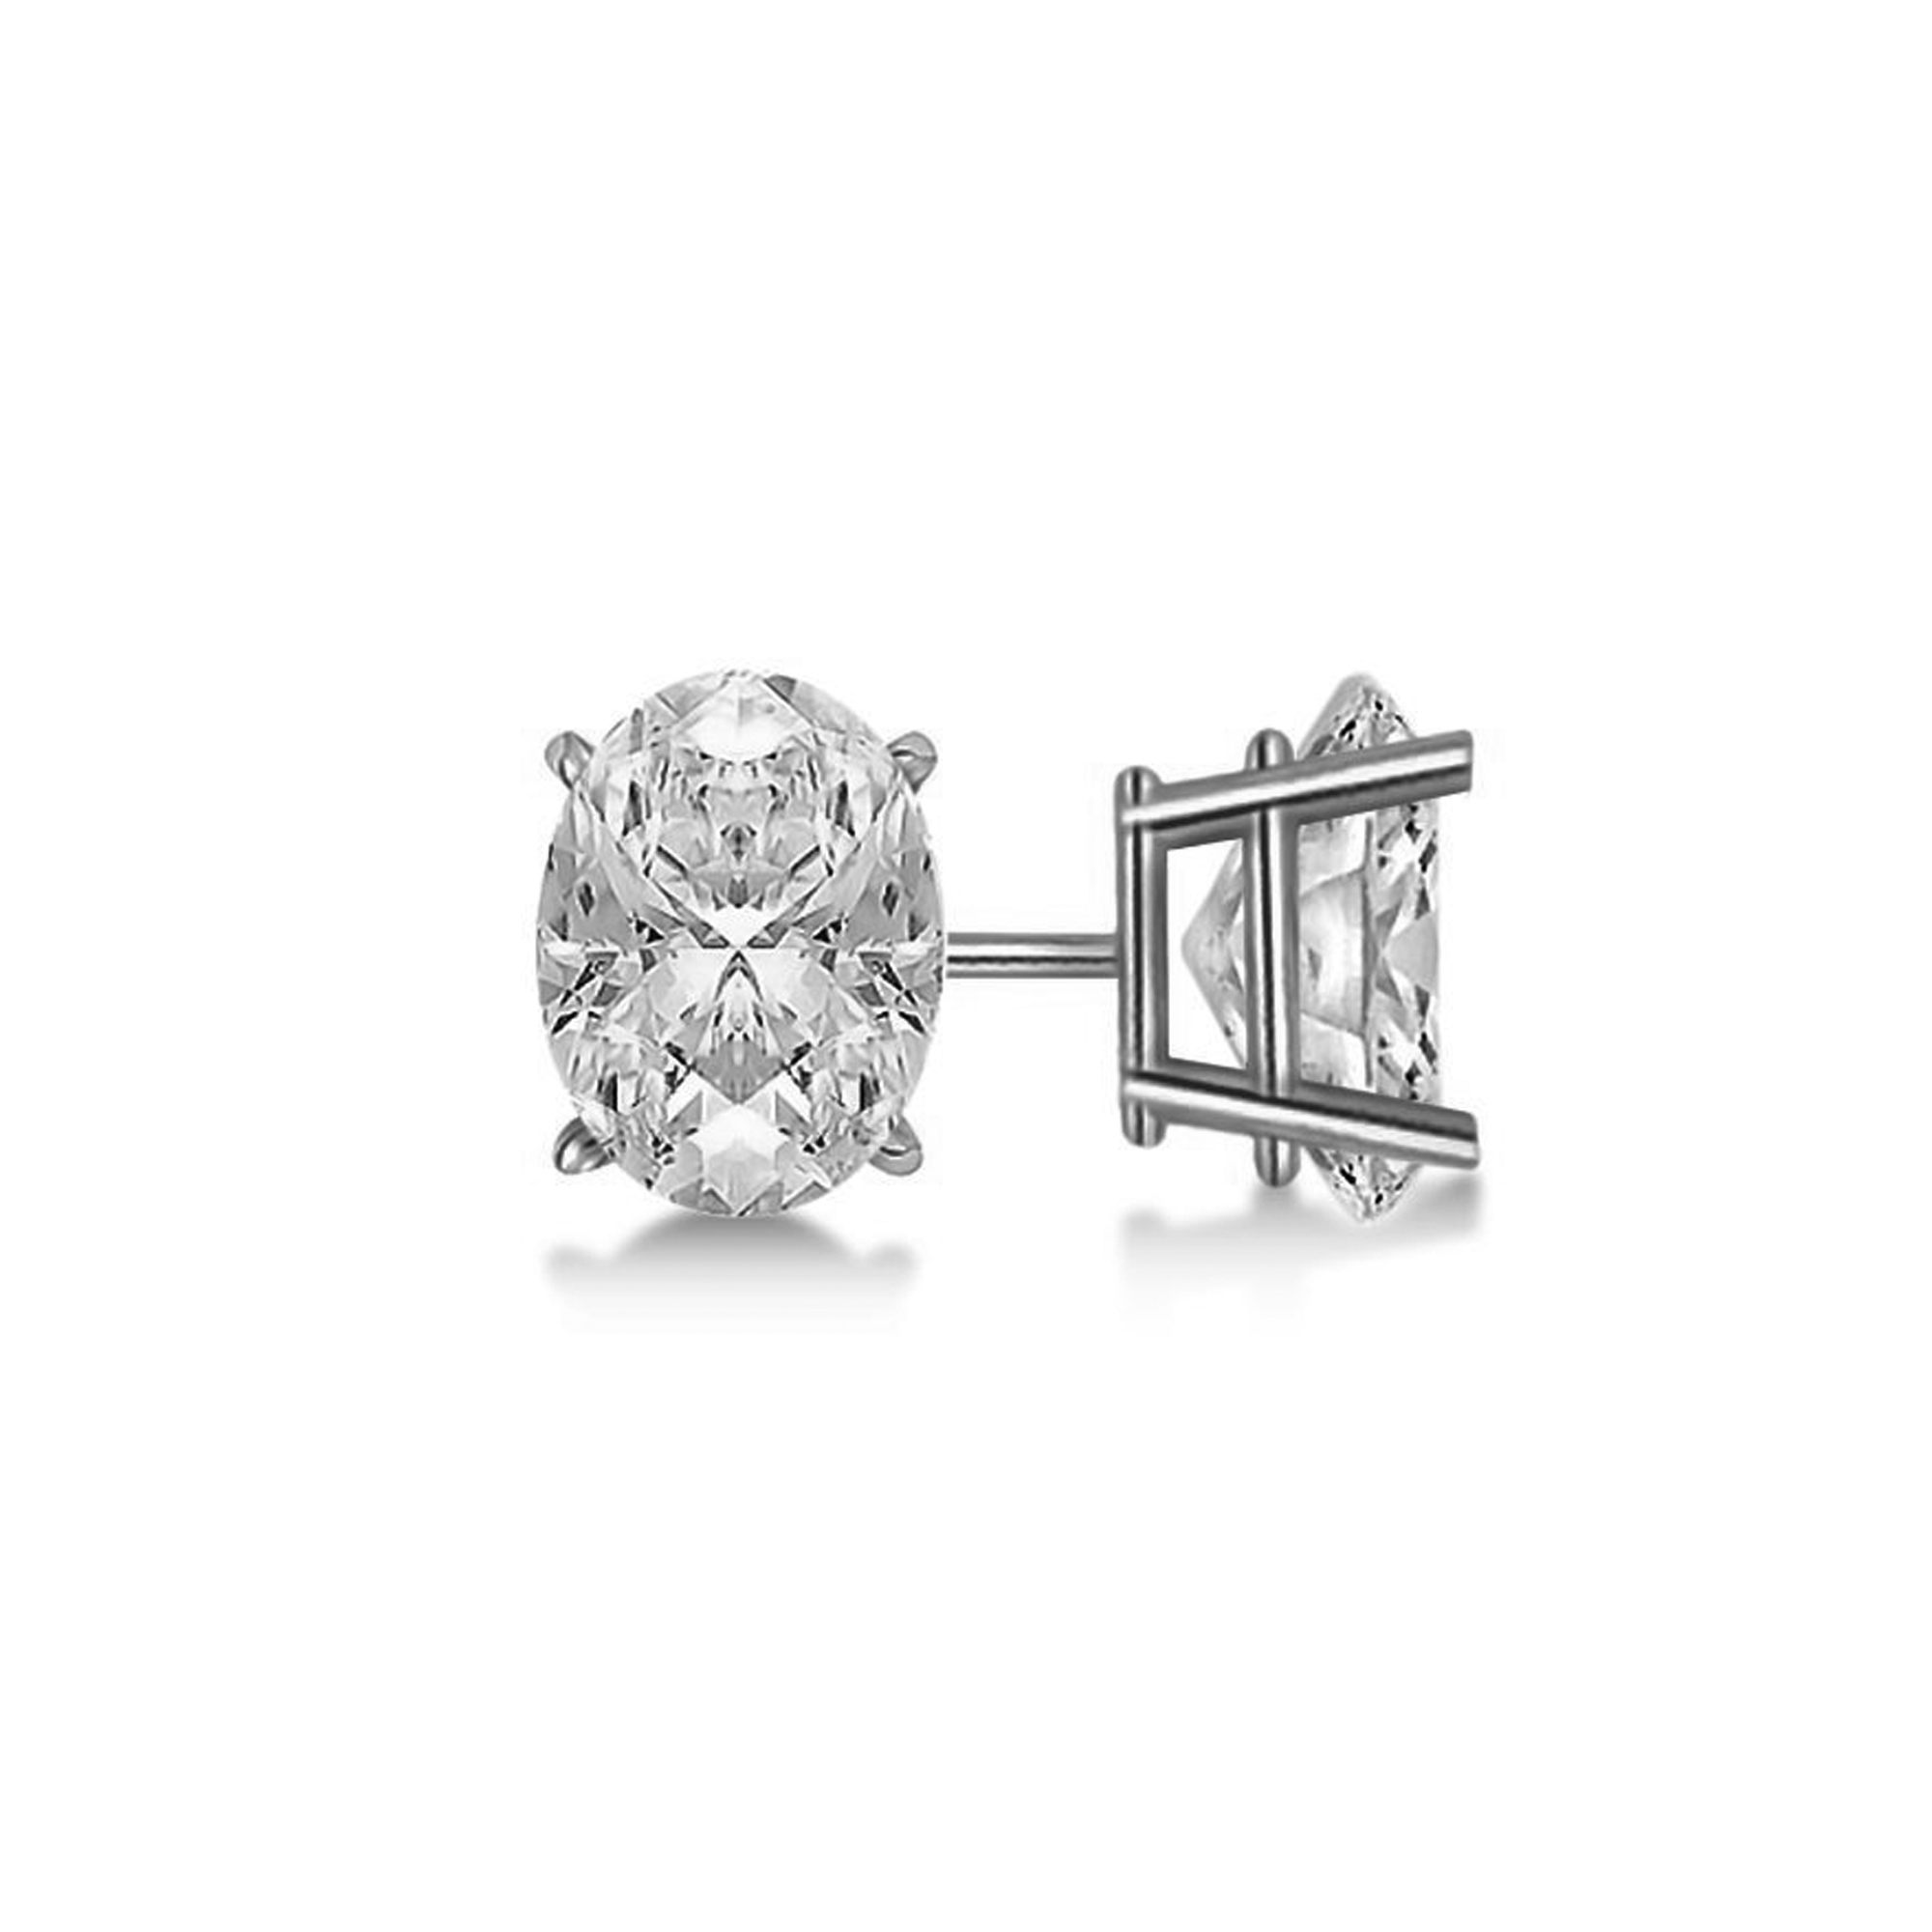 new moissanite topic helpful earrings my